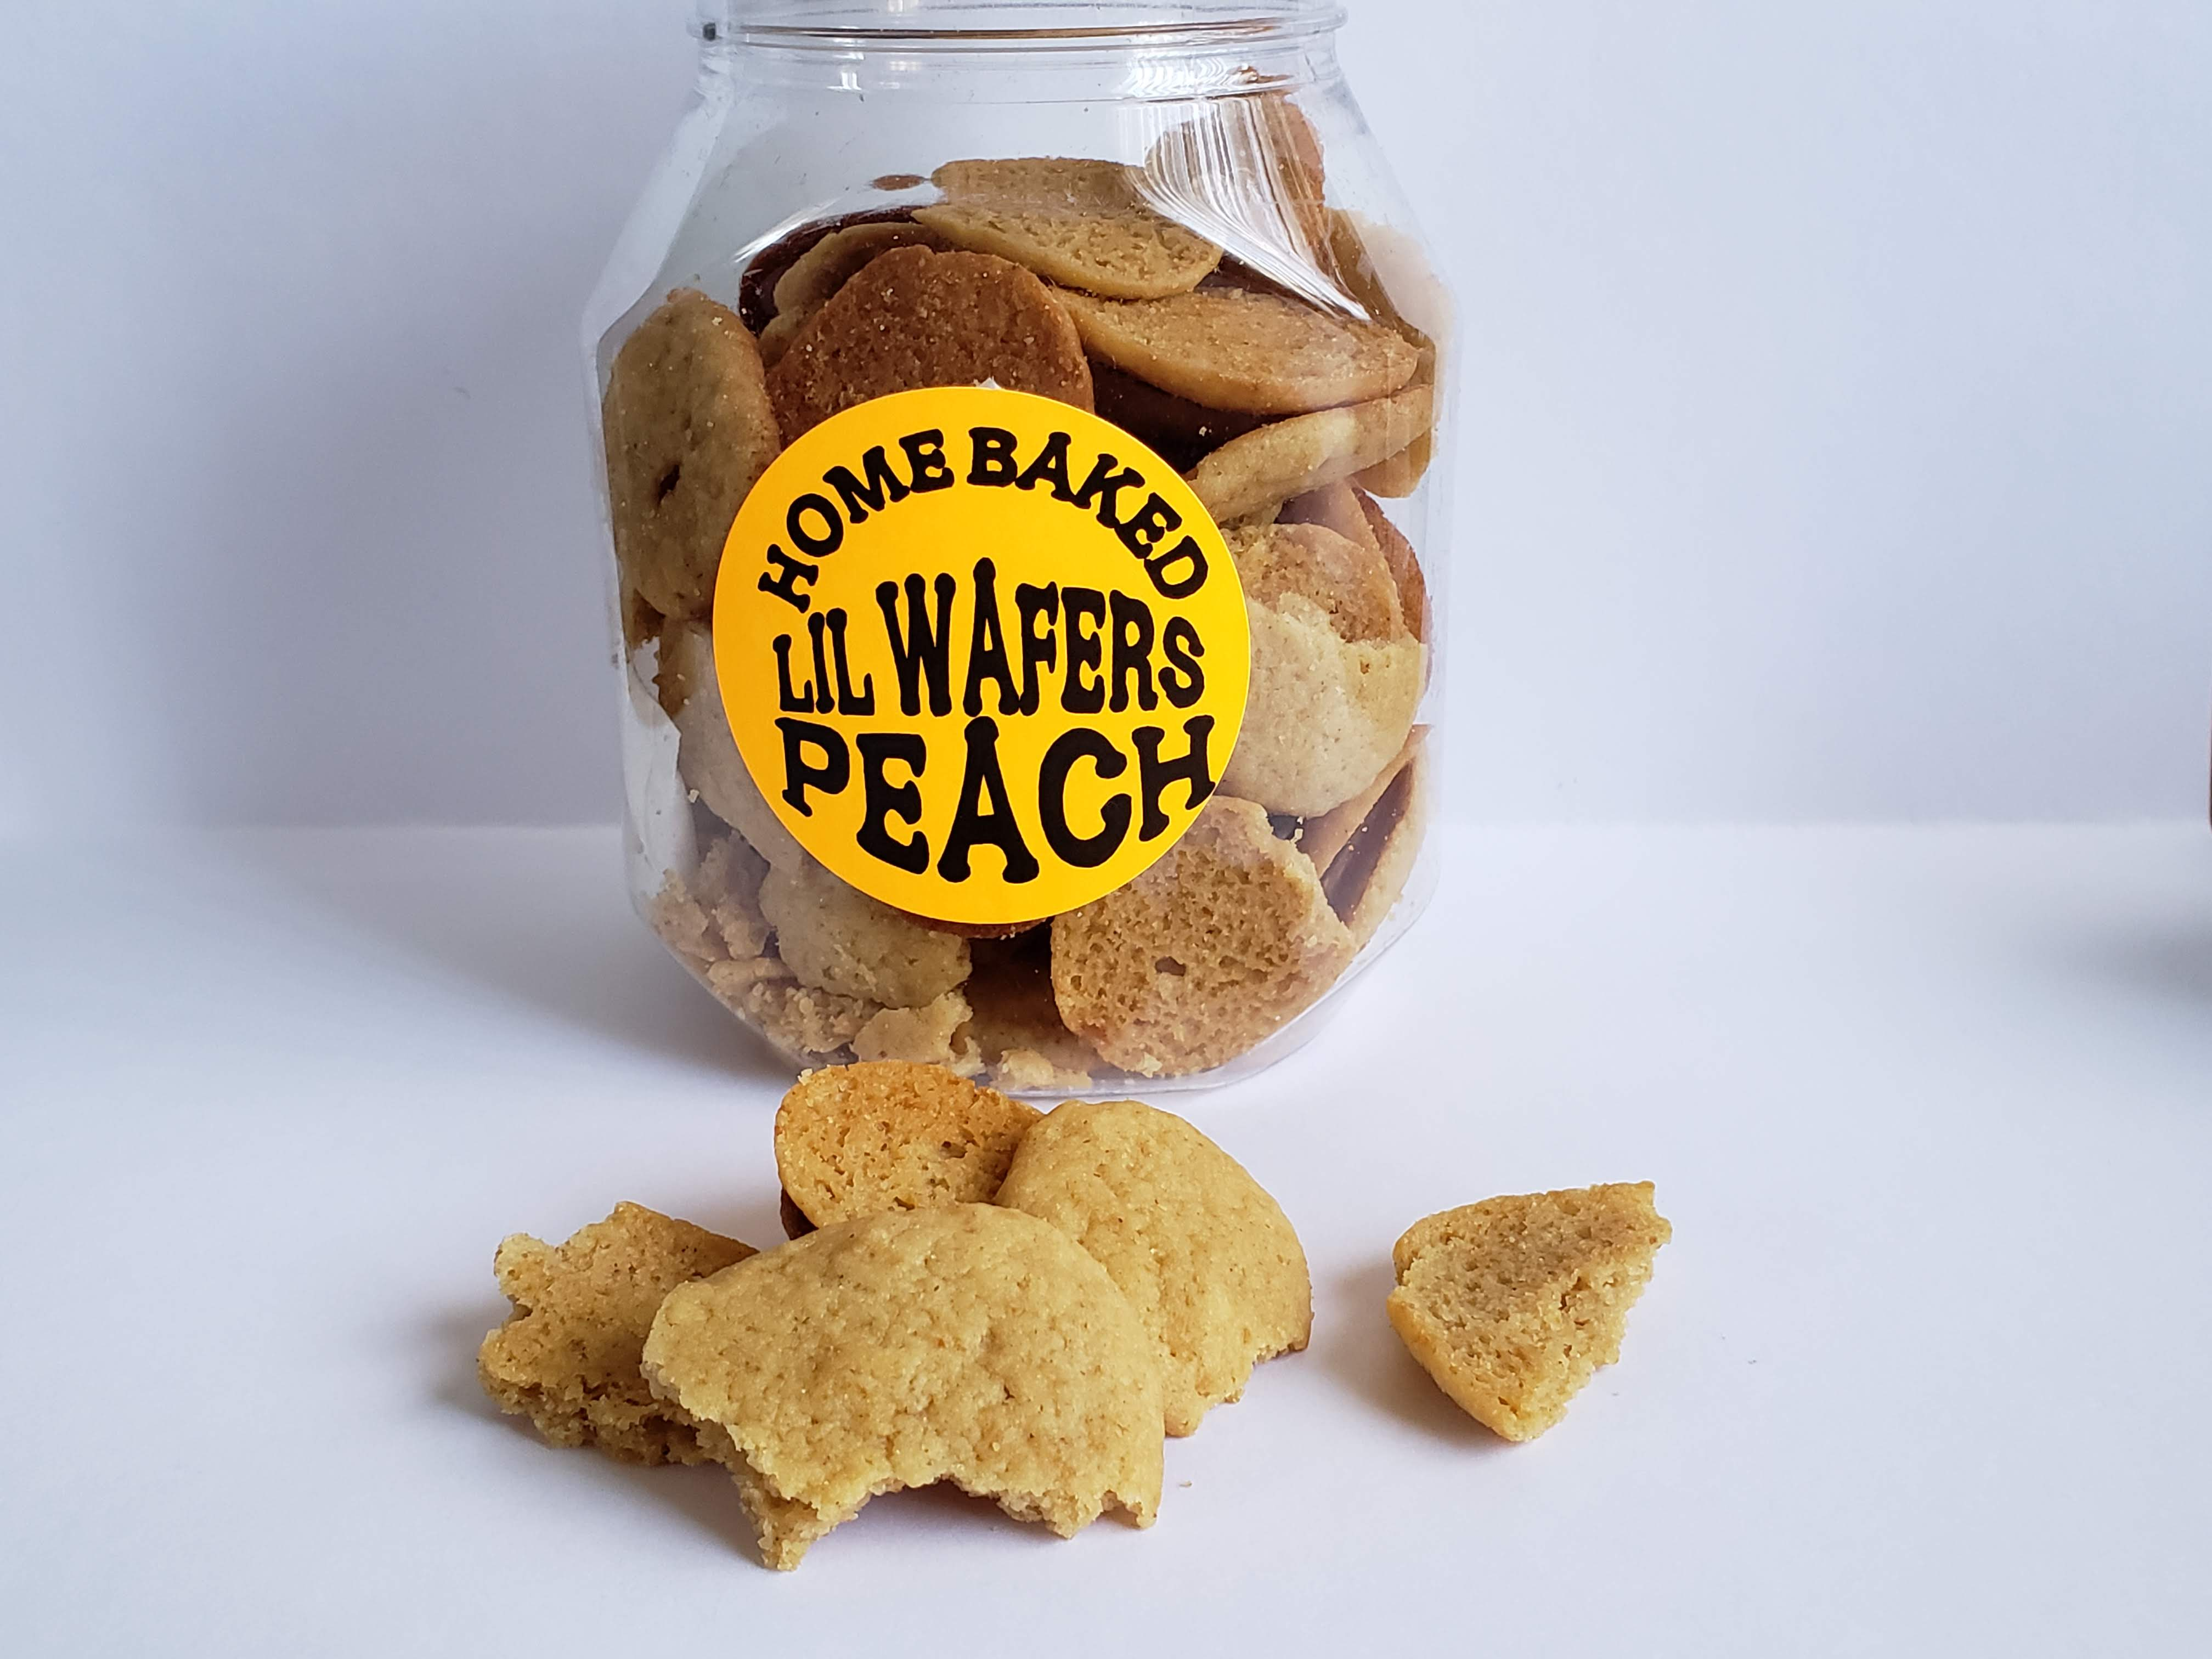 Li'l Wafers Peach